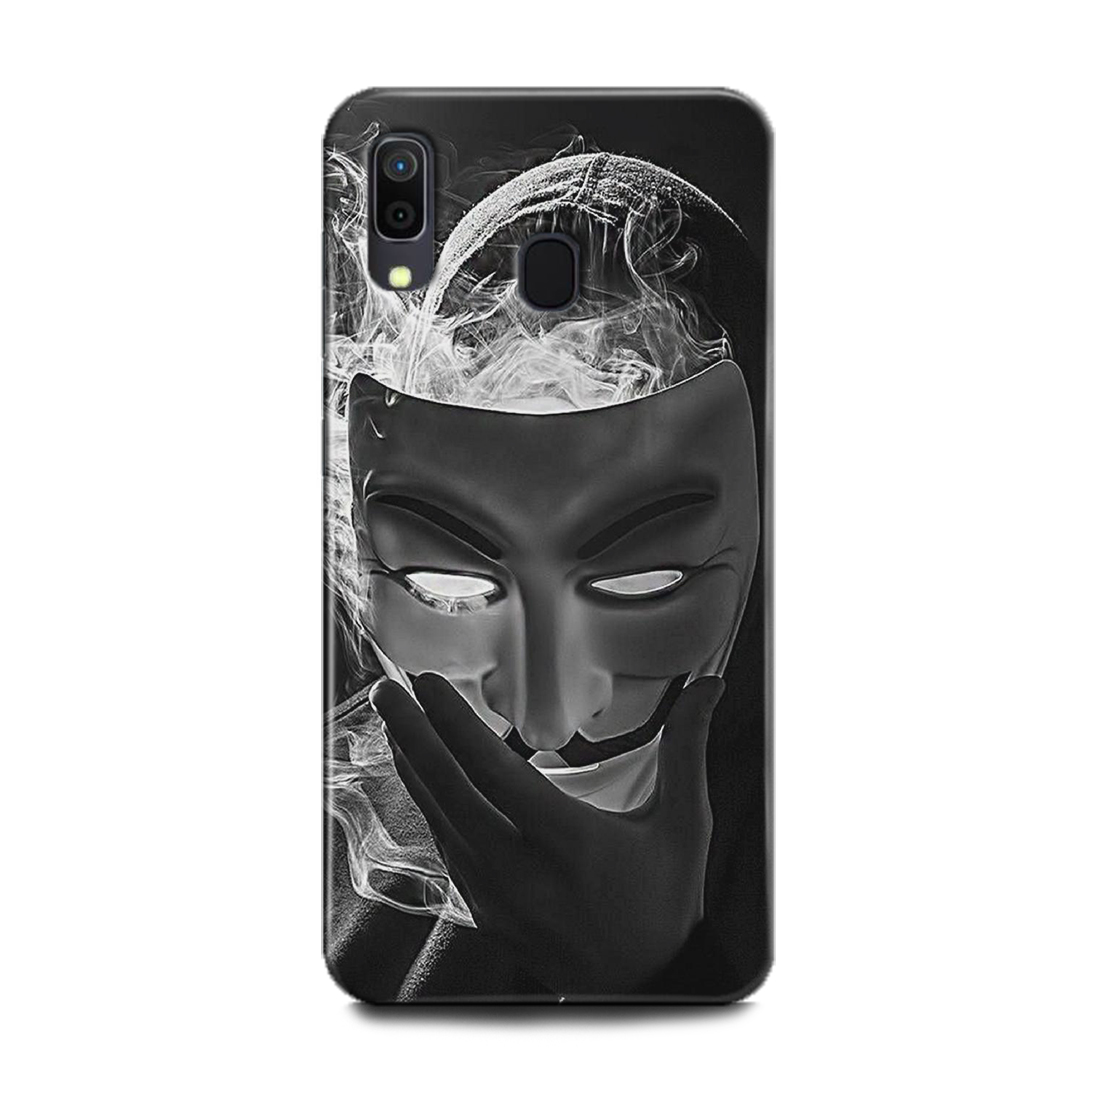 INDICRAFT Mobile Back Cover For Samsung Galaxy M10s Hard Case (Anonymous Blade, Joker, Hacker, V For Vandata, M10s) (AB-GalaxyM10s-0077)